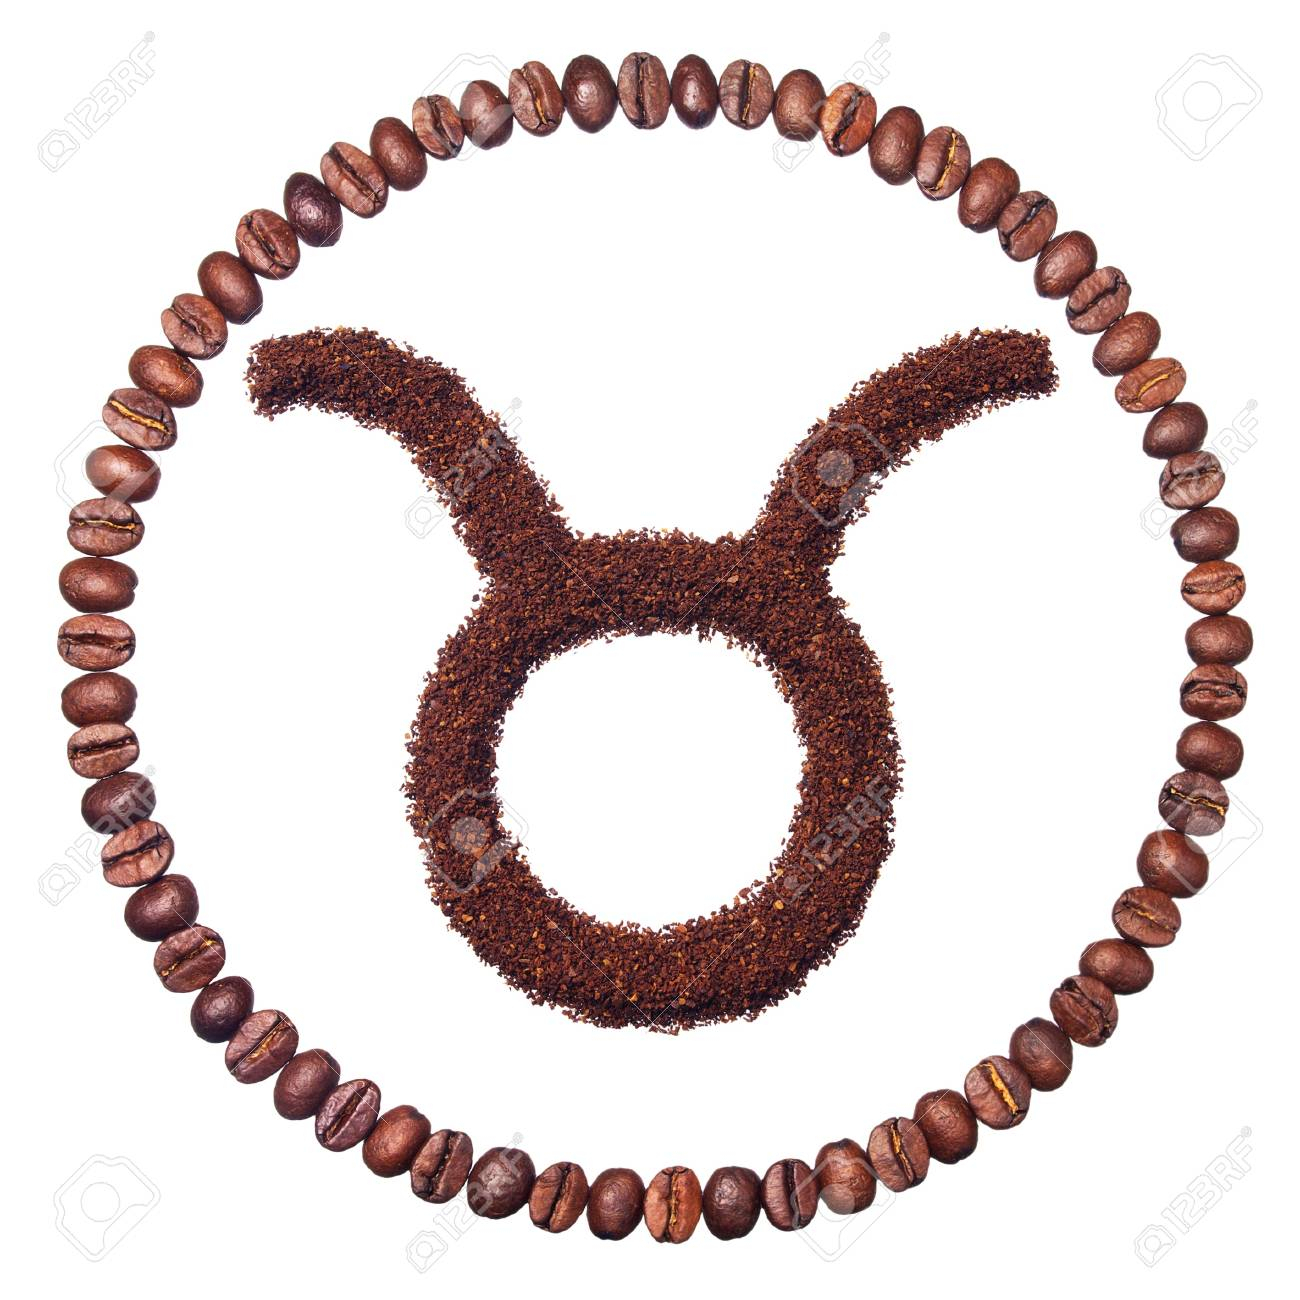 Taurus - Zodiac Signs Of Ground Coffee And Coffee Beans Isolated..